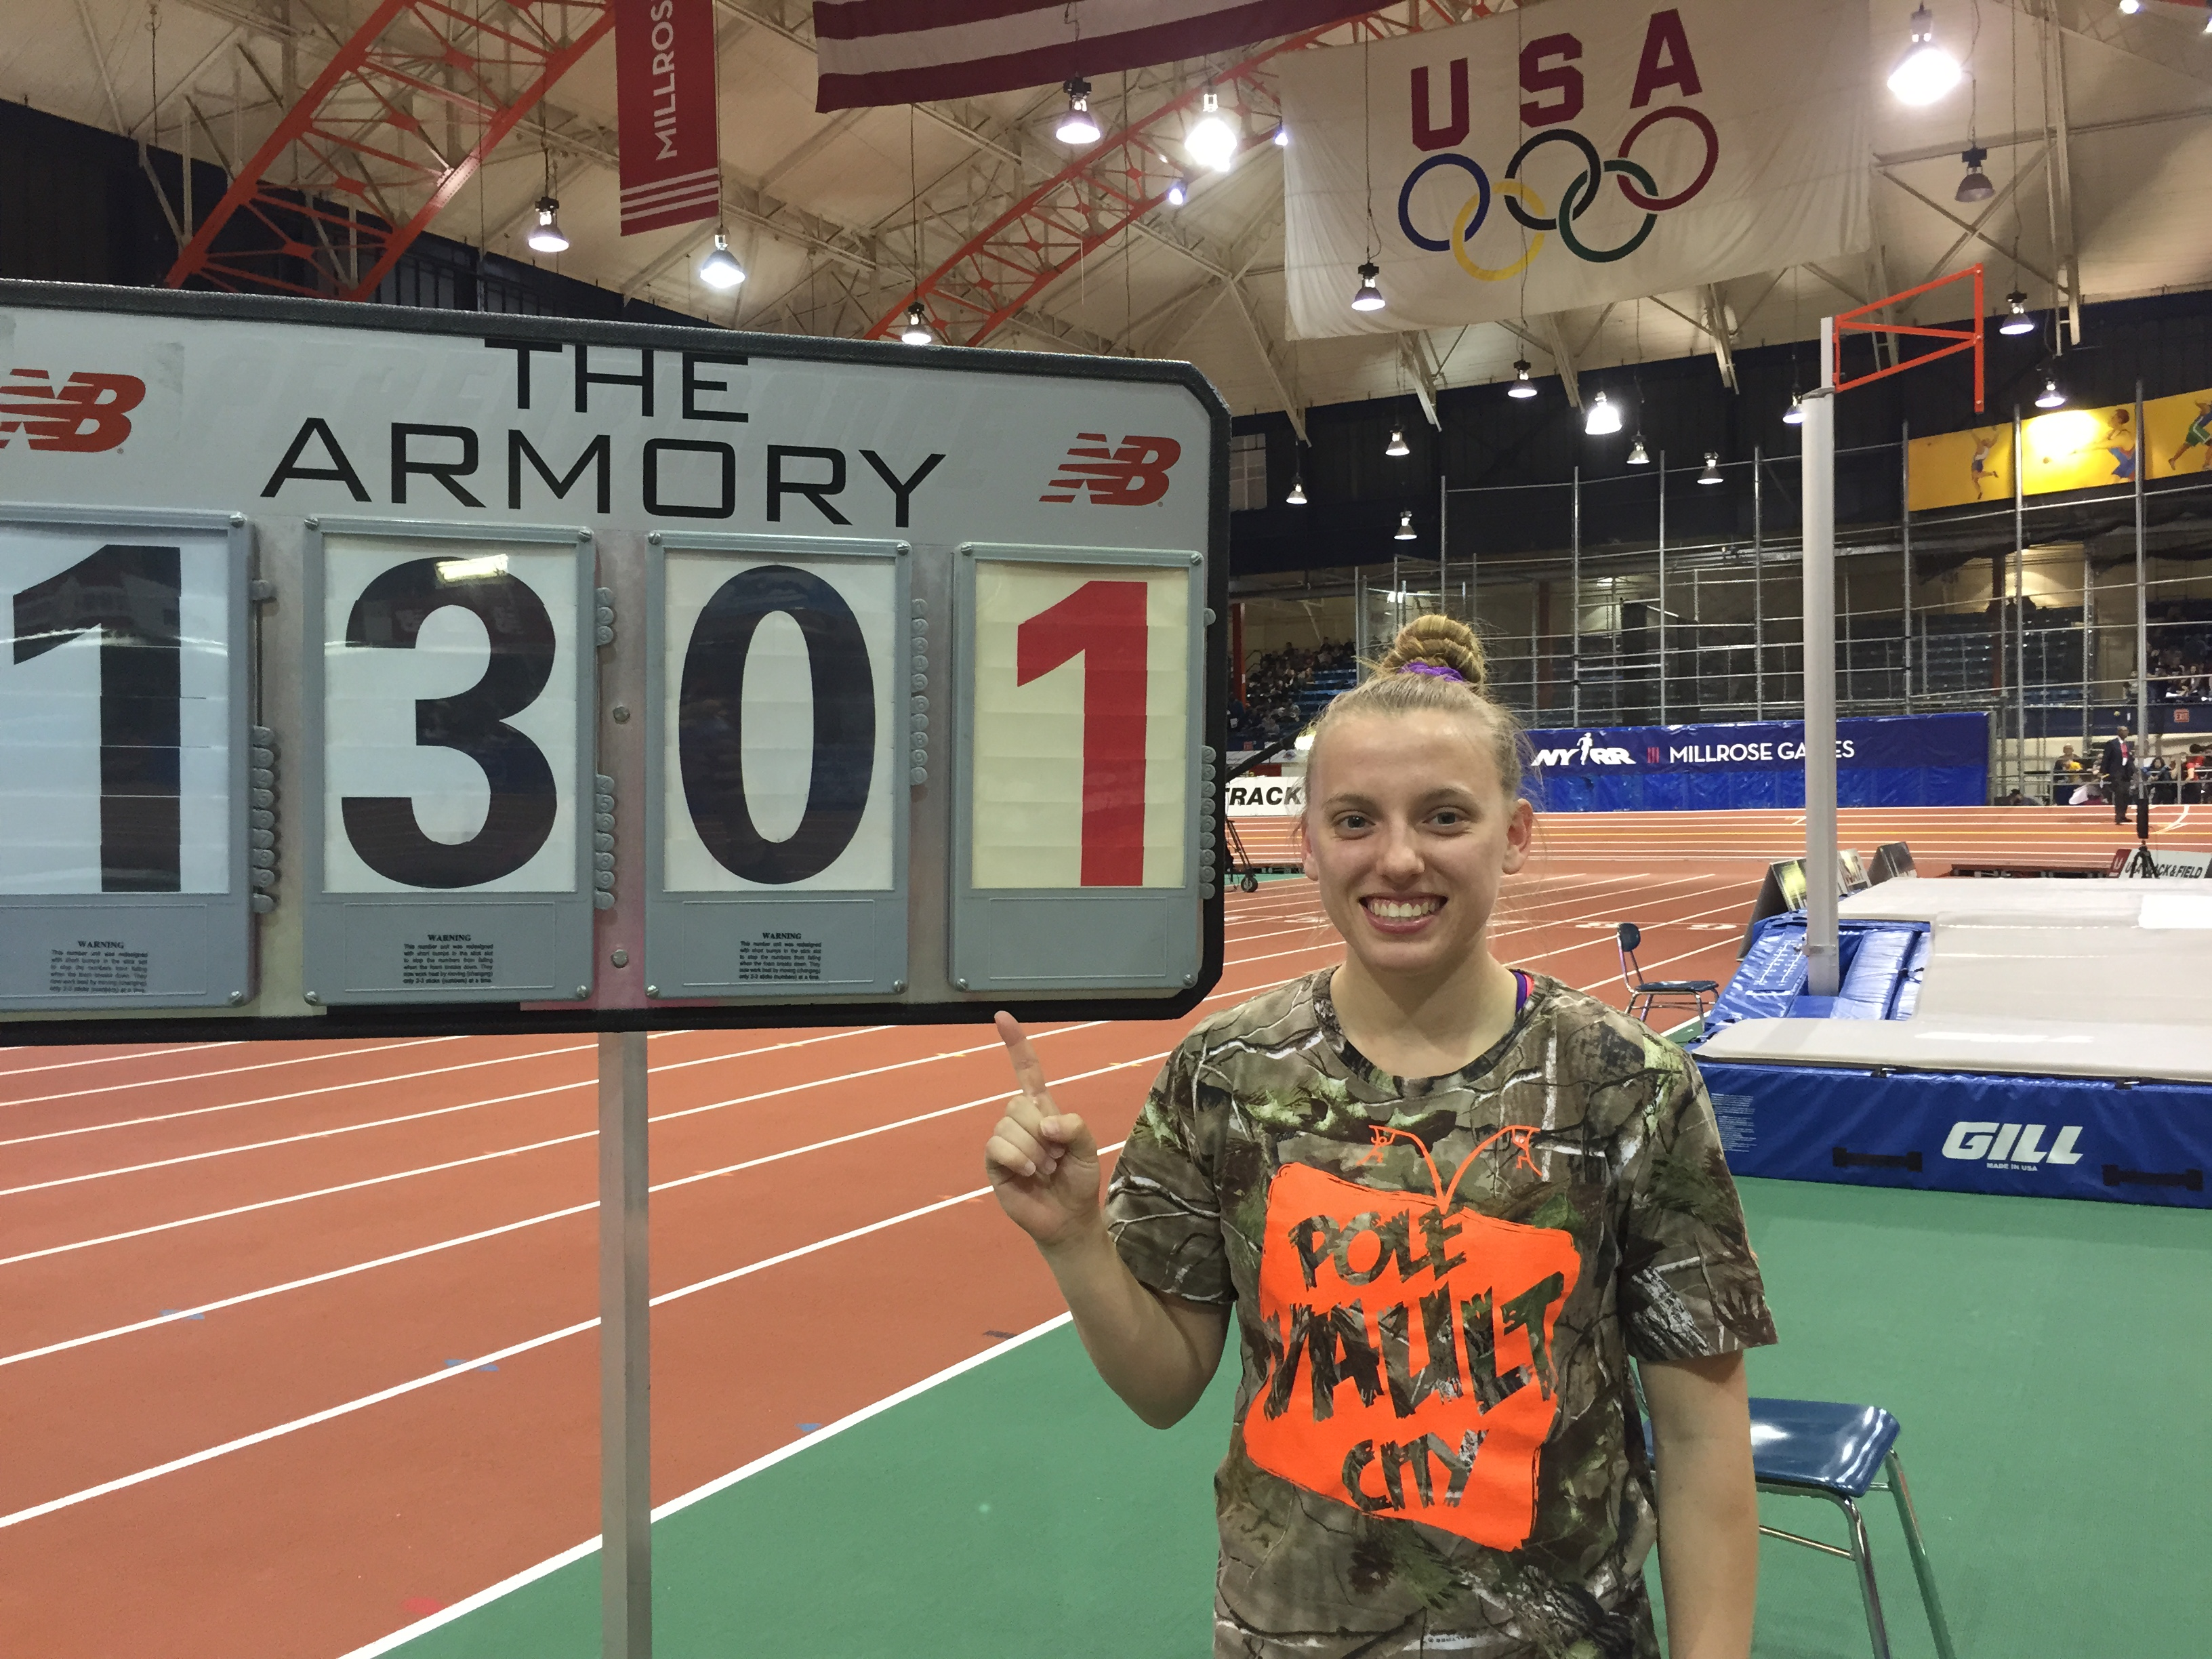 Nikki with her awesome sign showing Florida indoor record.